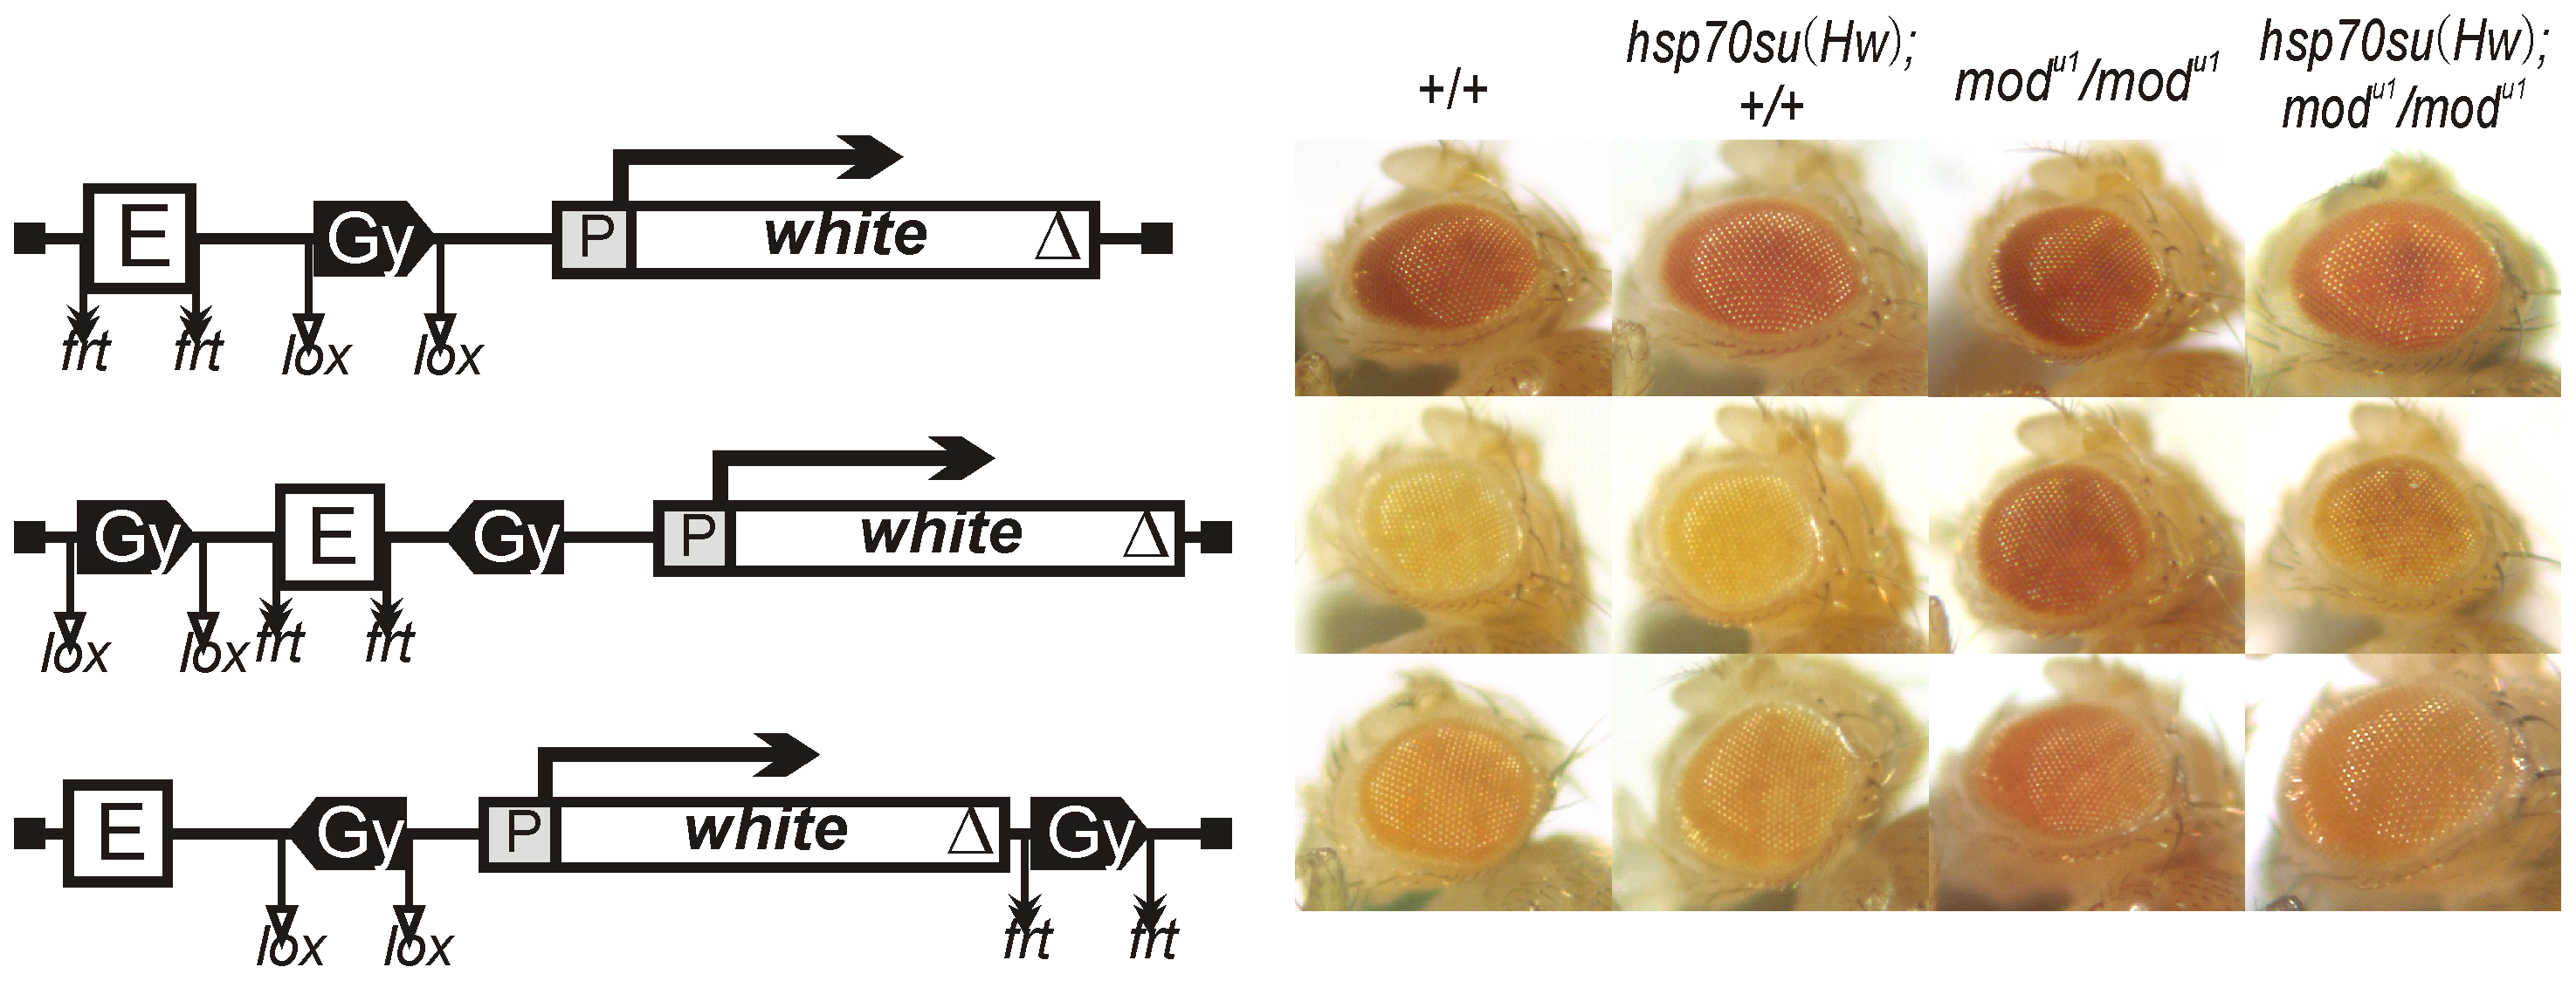 The role of Su(Hw) and Mod(mdg4)-67.2 proteins in the enhancer blocking by the <i>gypsy</i> insulator.